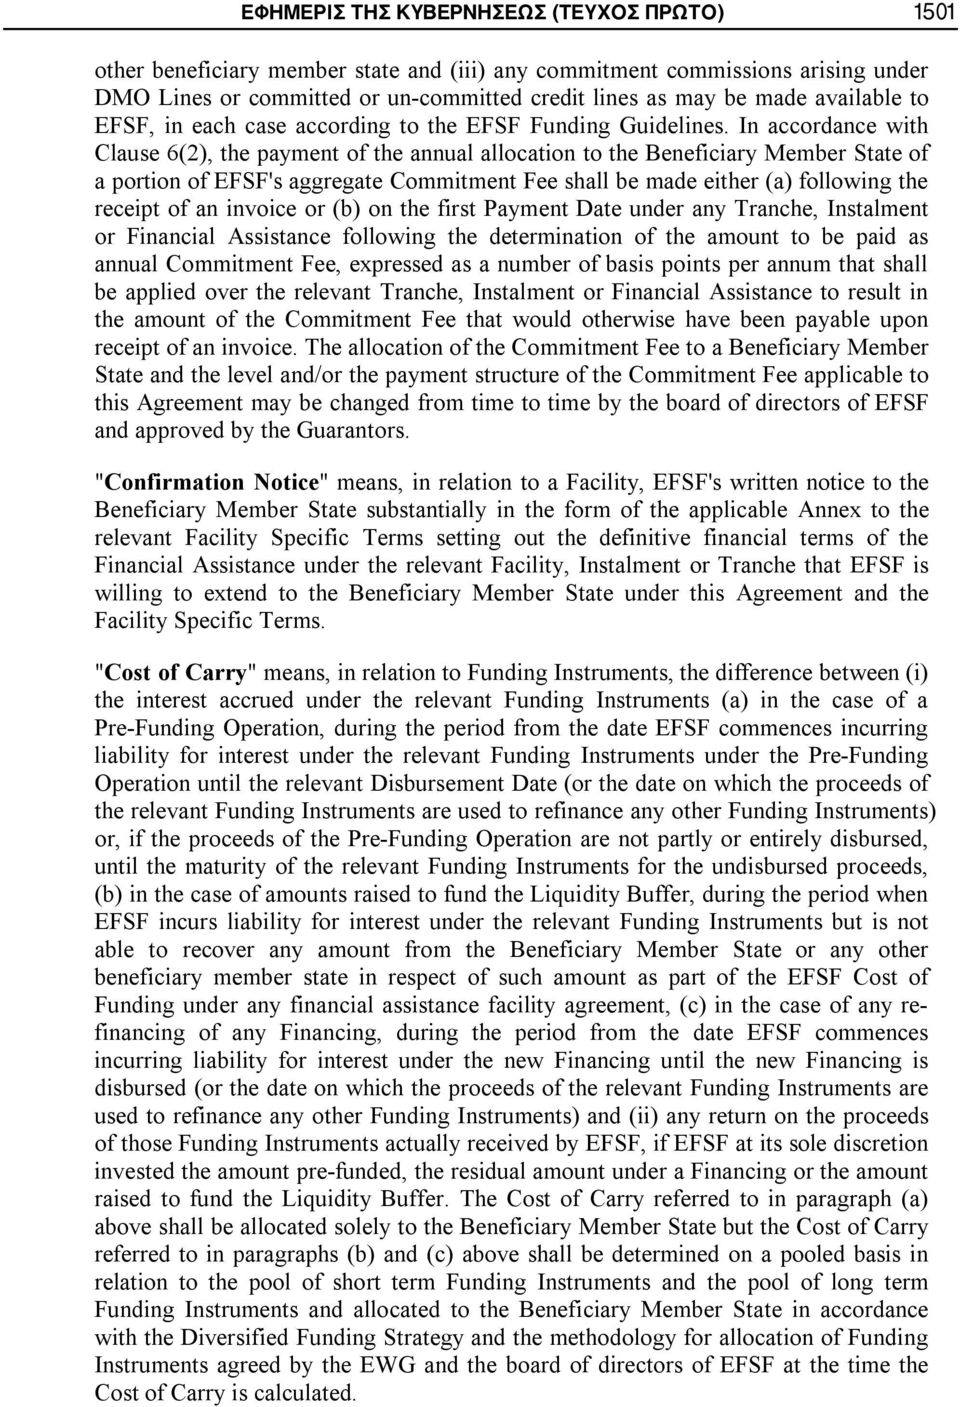 In accordance with Clause 6(2), the payment of the annual allocation to the Beneficiary Member State of a portion of EFSF's aggregate Commitment Fee shall be made either (a) following the receipt of